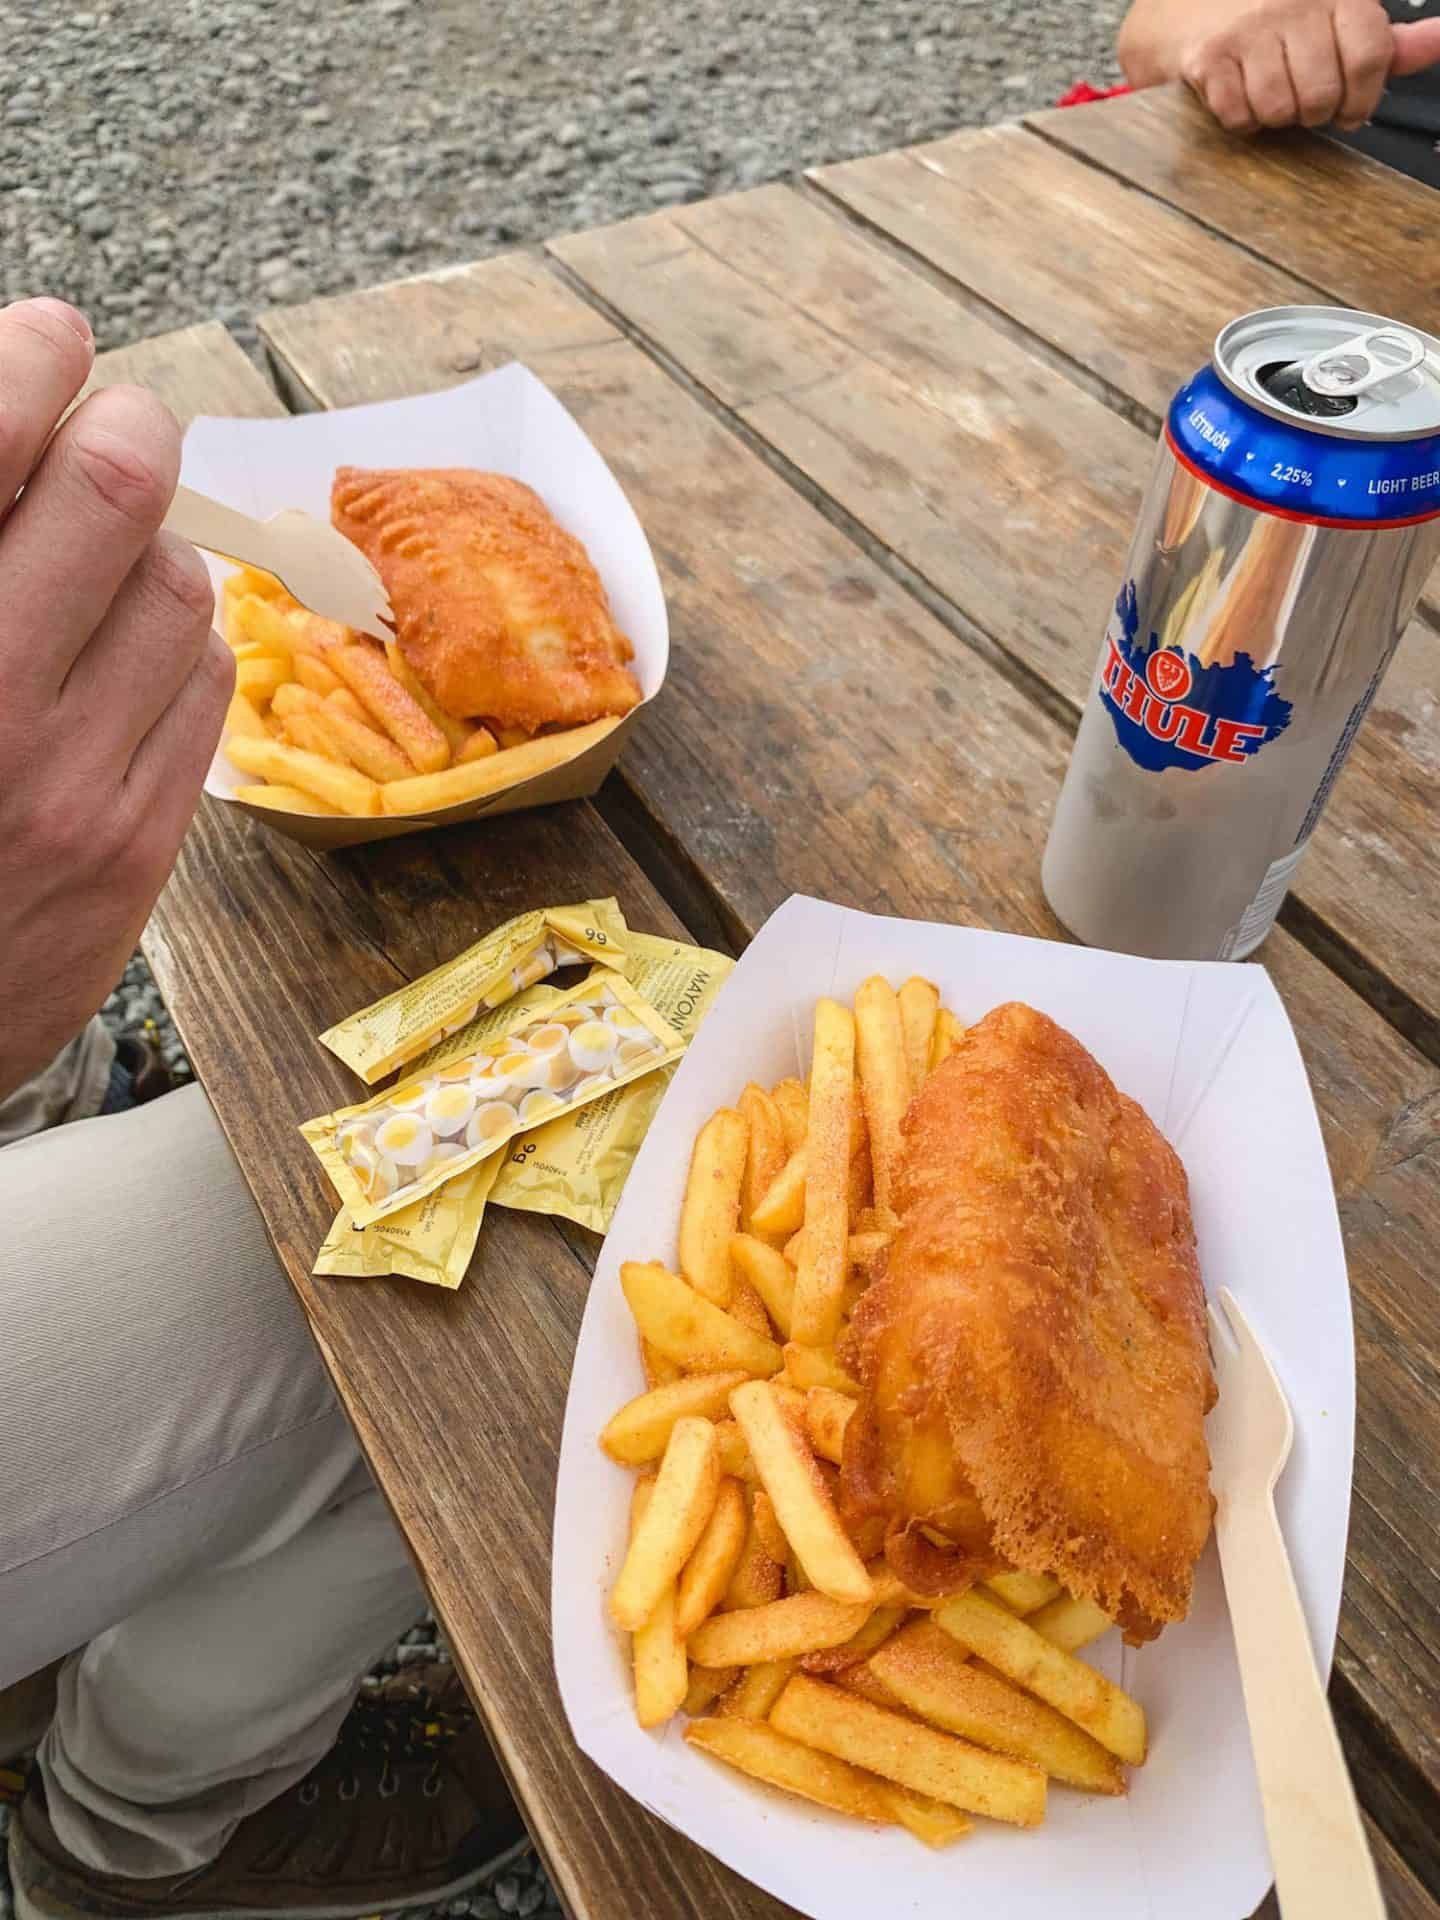 Nailed It Fish and Chips serves up the best fish and chips in all of Iceland